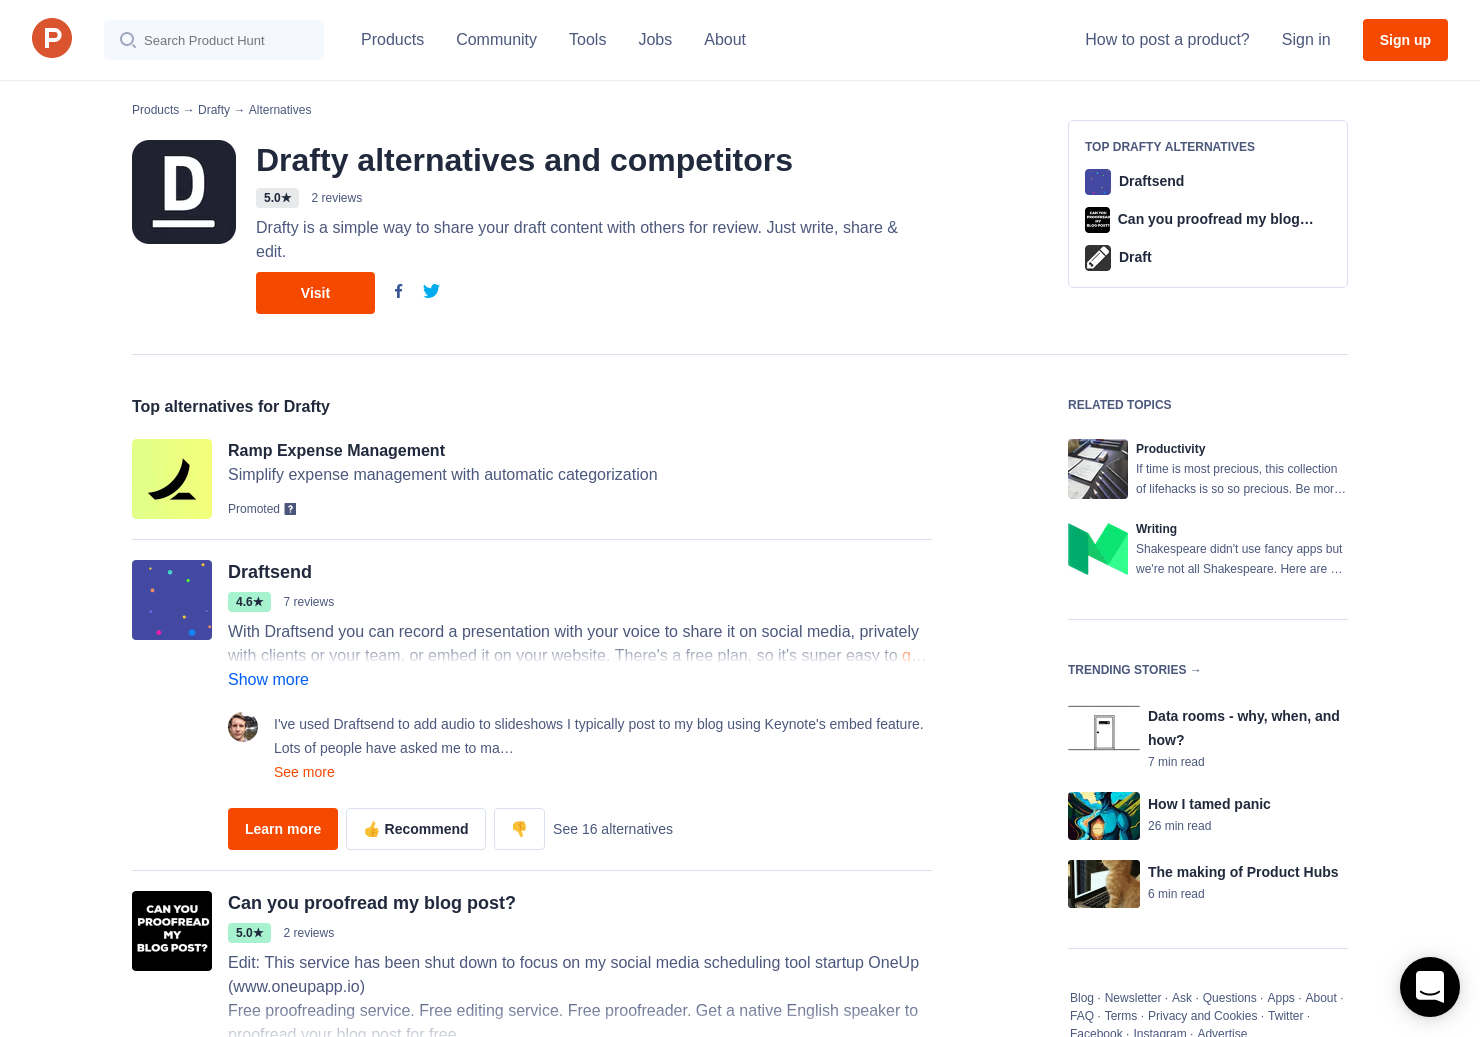 9 Alternatives to Drafty | Product Hunt